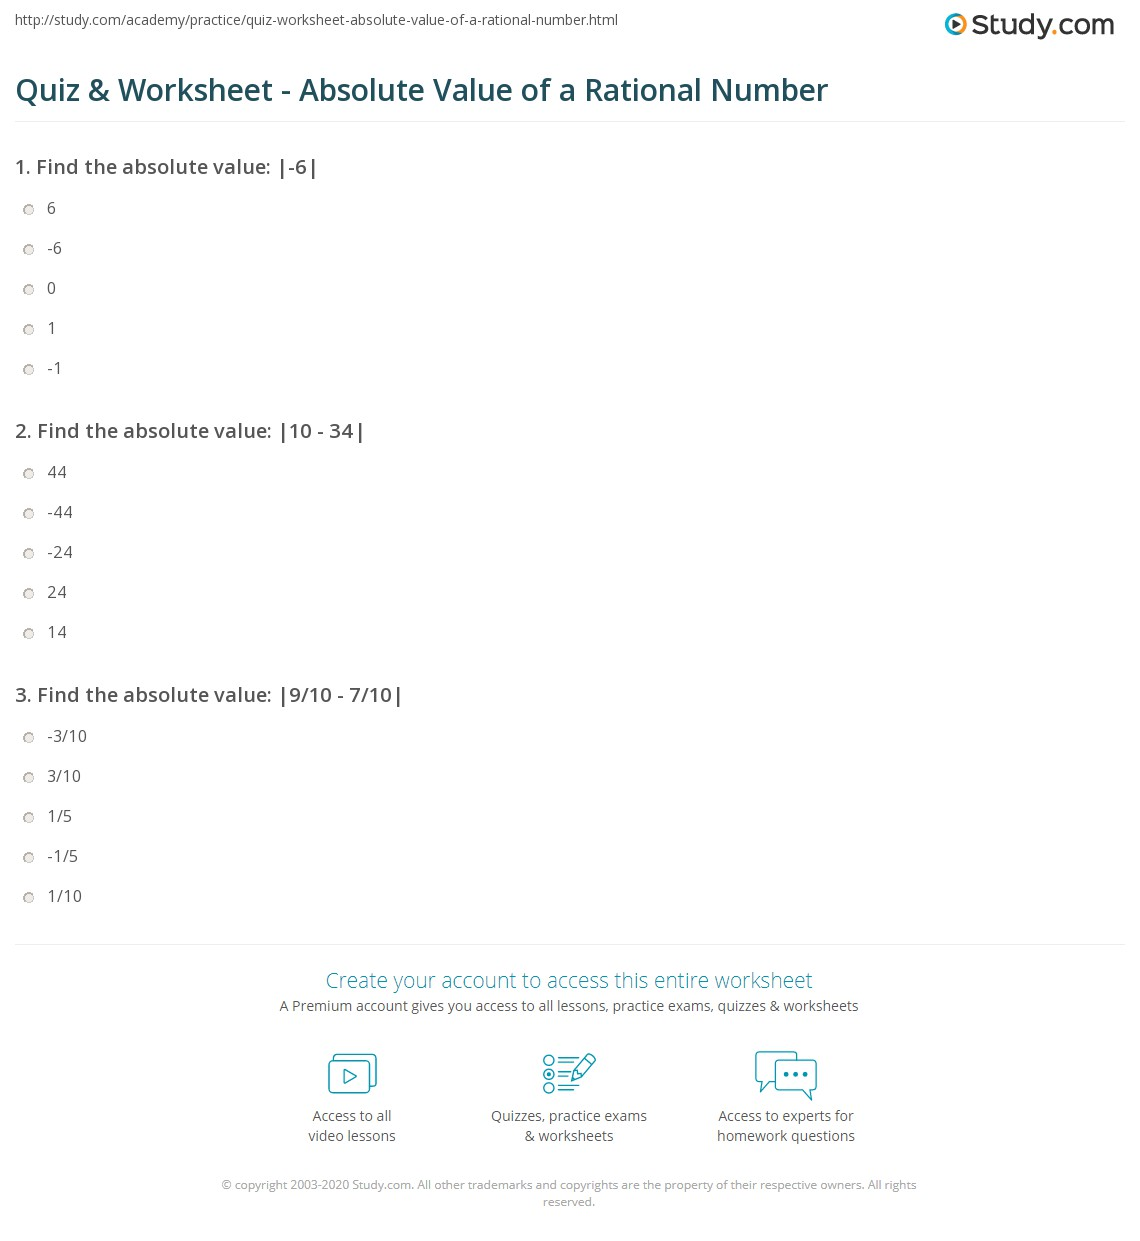 Quiz & Worksheet - Absolute Value of a Rational Number | Study.com